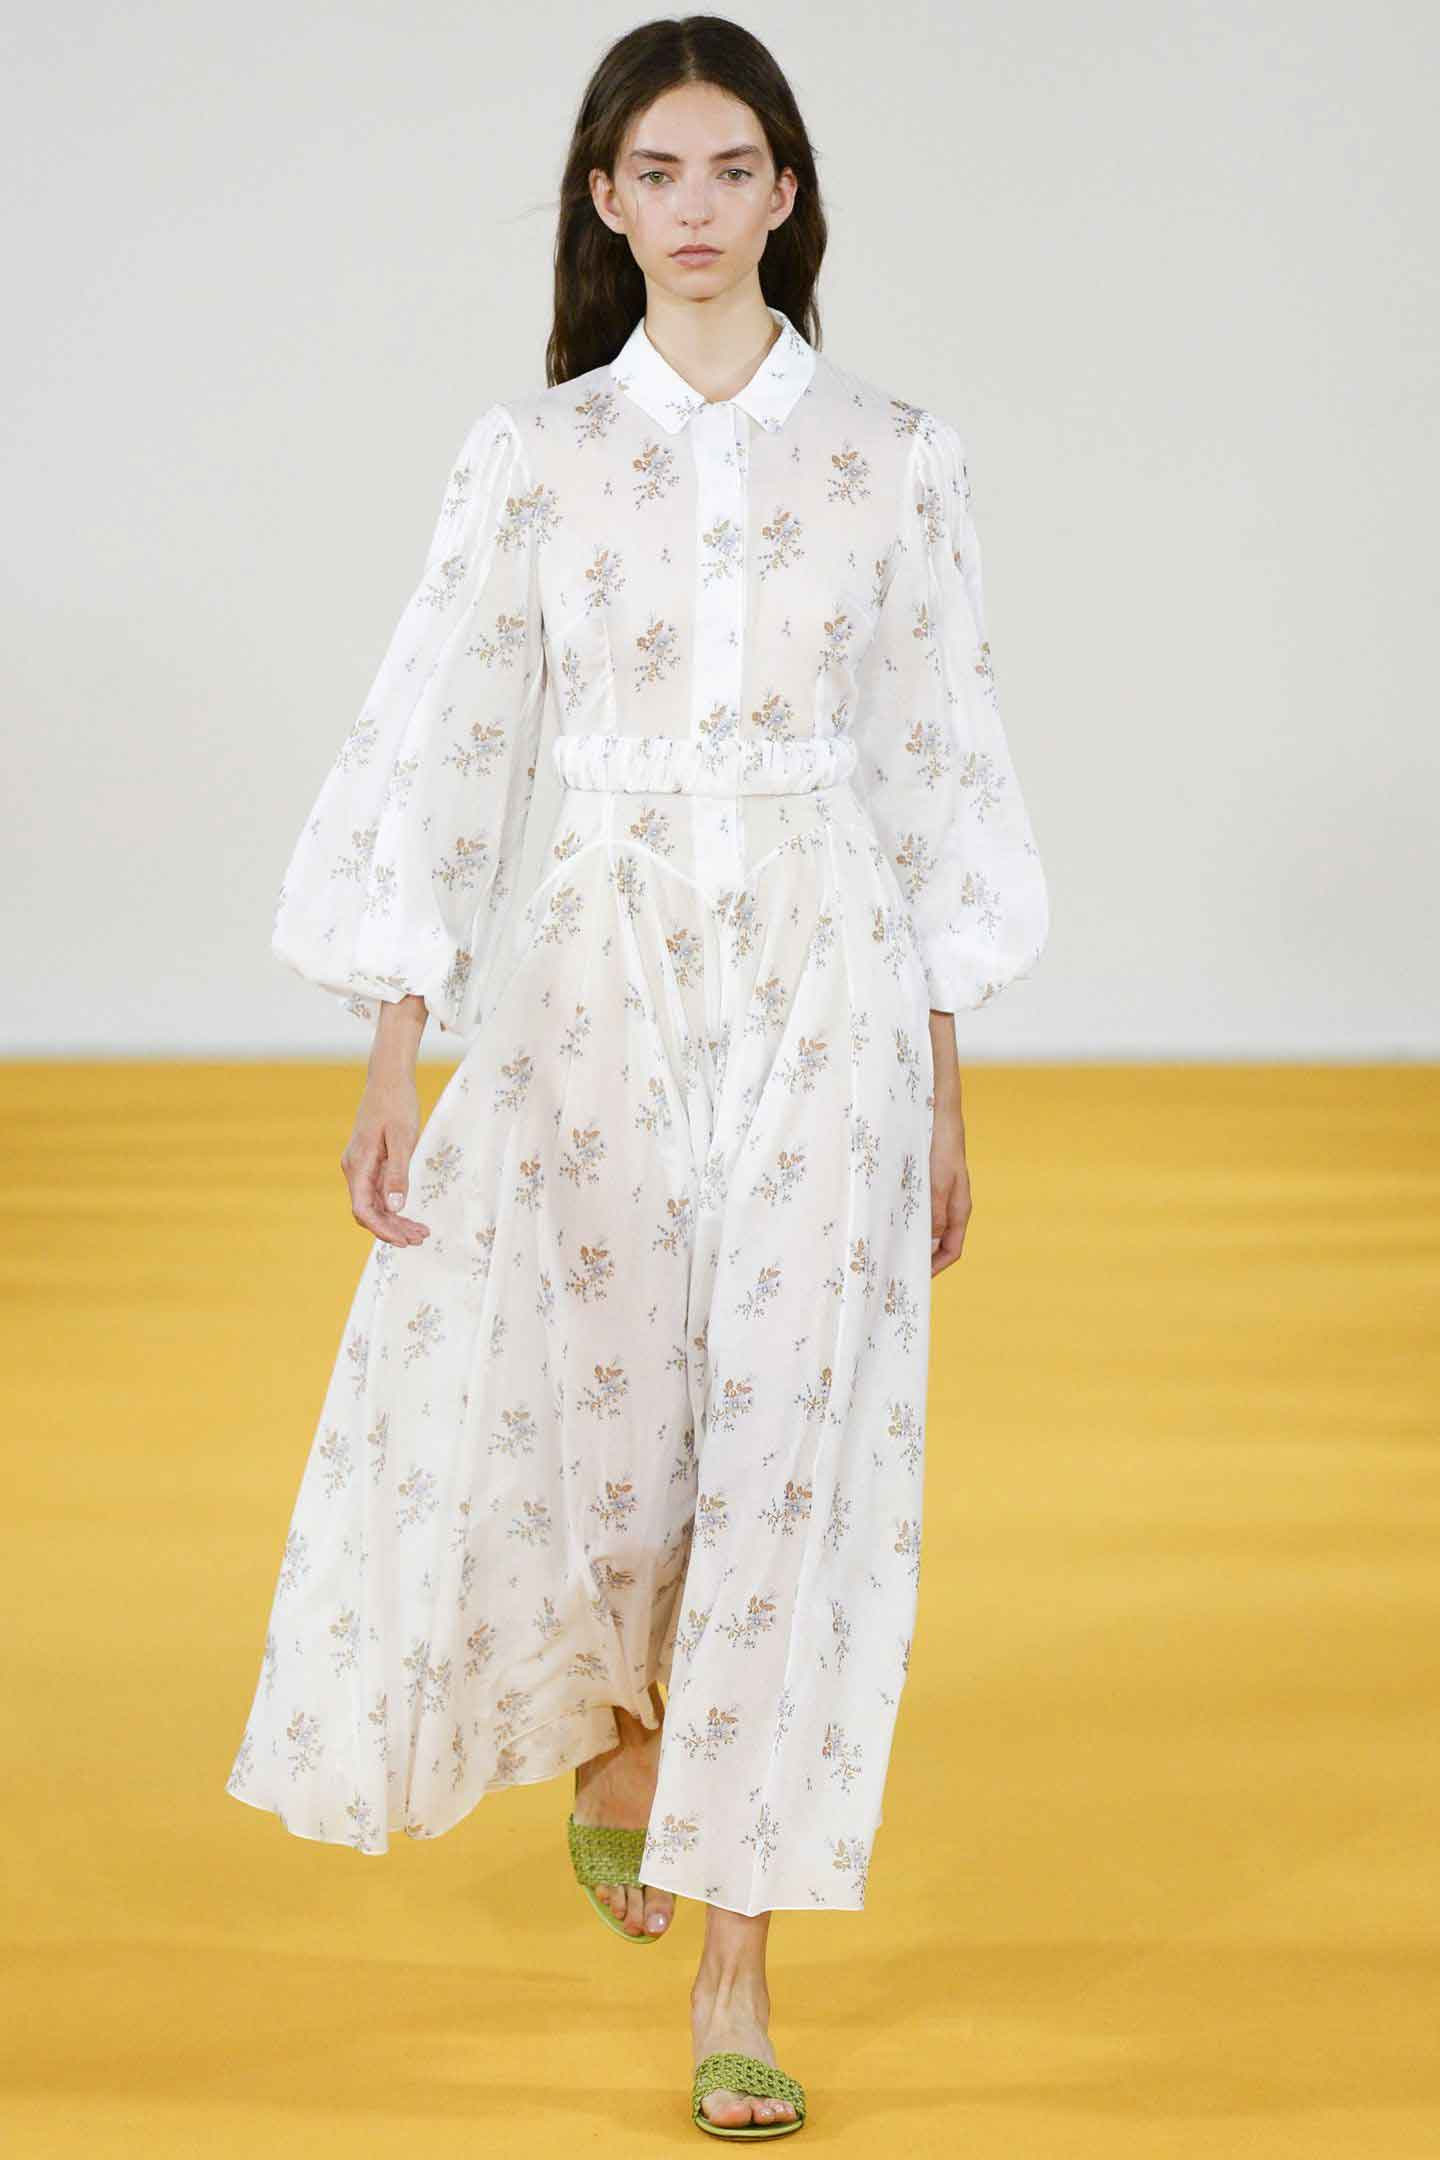 'A fresh, breezy romanticism.' Emilia Wickstead, SS17.